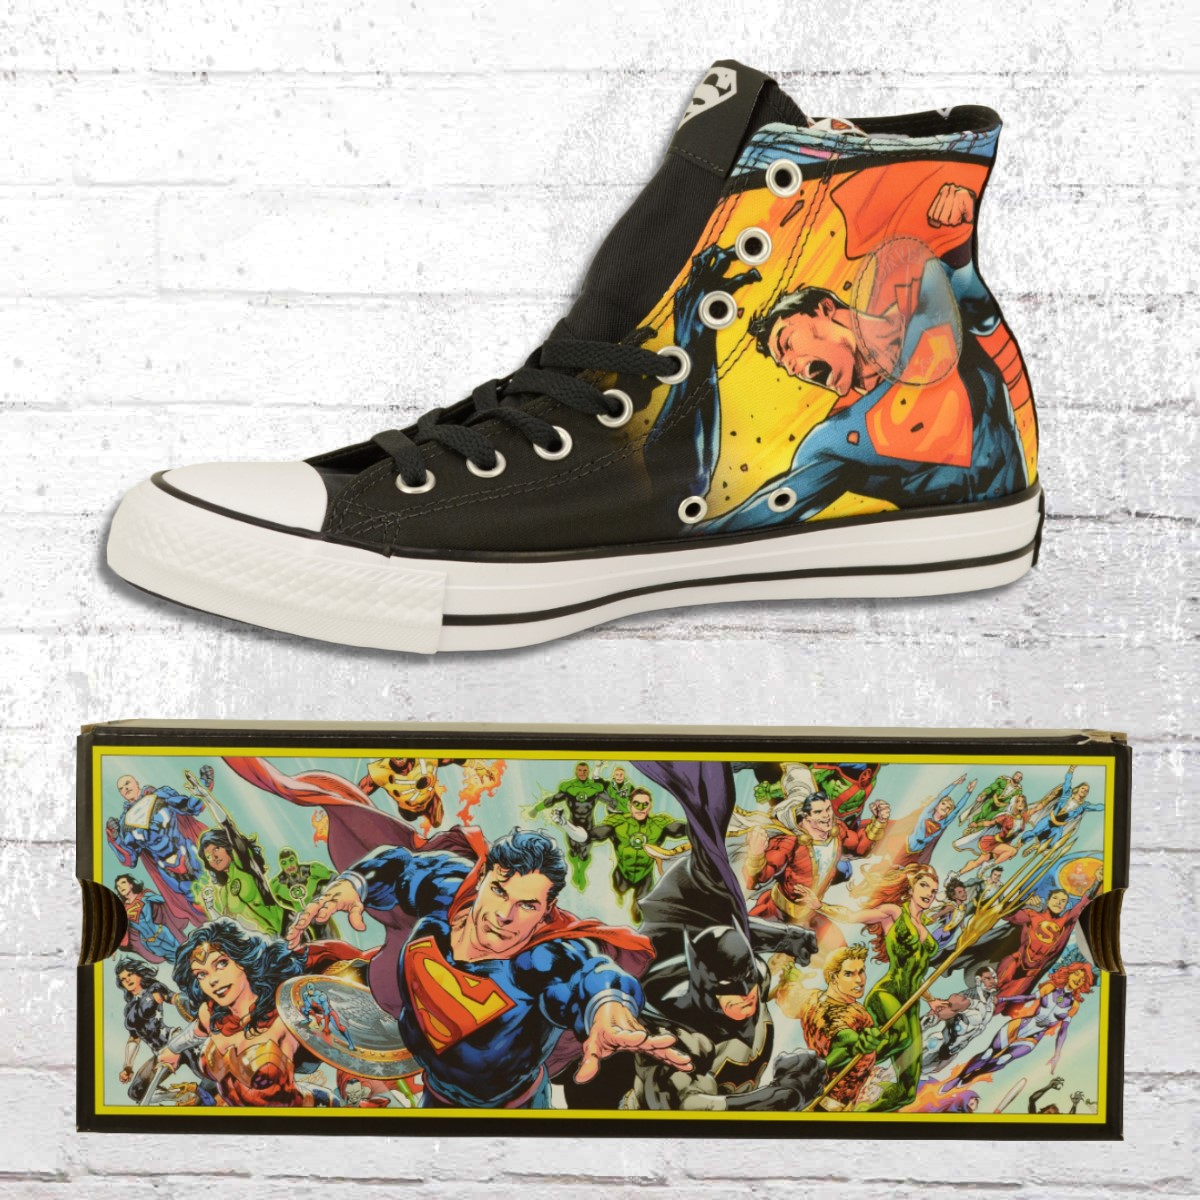 premium selection 8c0d8 d609d Jetzt bestellen | Converse Unisex Comic Chucks Superman CT ...